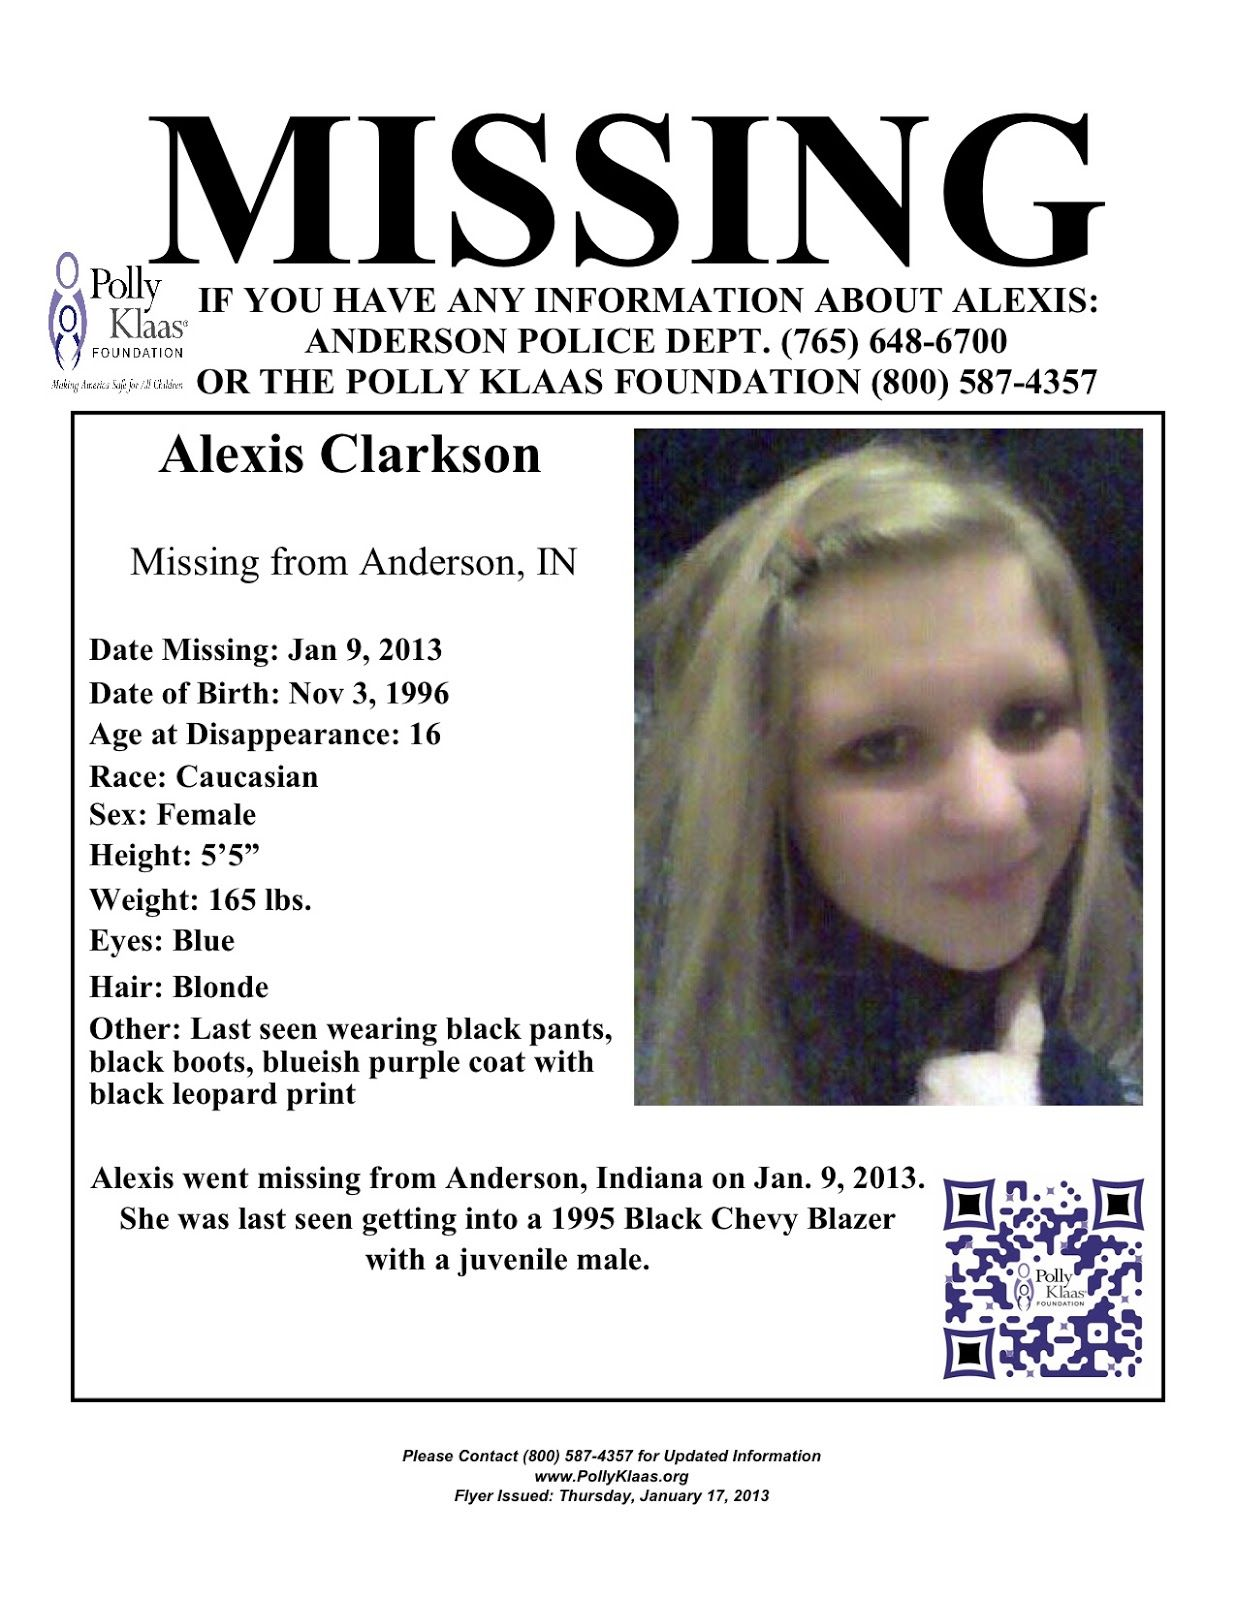 Missing Persons Of America Alexis Clarkson Missing Teen From  1a2d2835f1a4cf563c158072e85cbaef 402720391649325996. Missing Person Poster  Generator  Missing People Posters